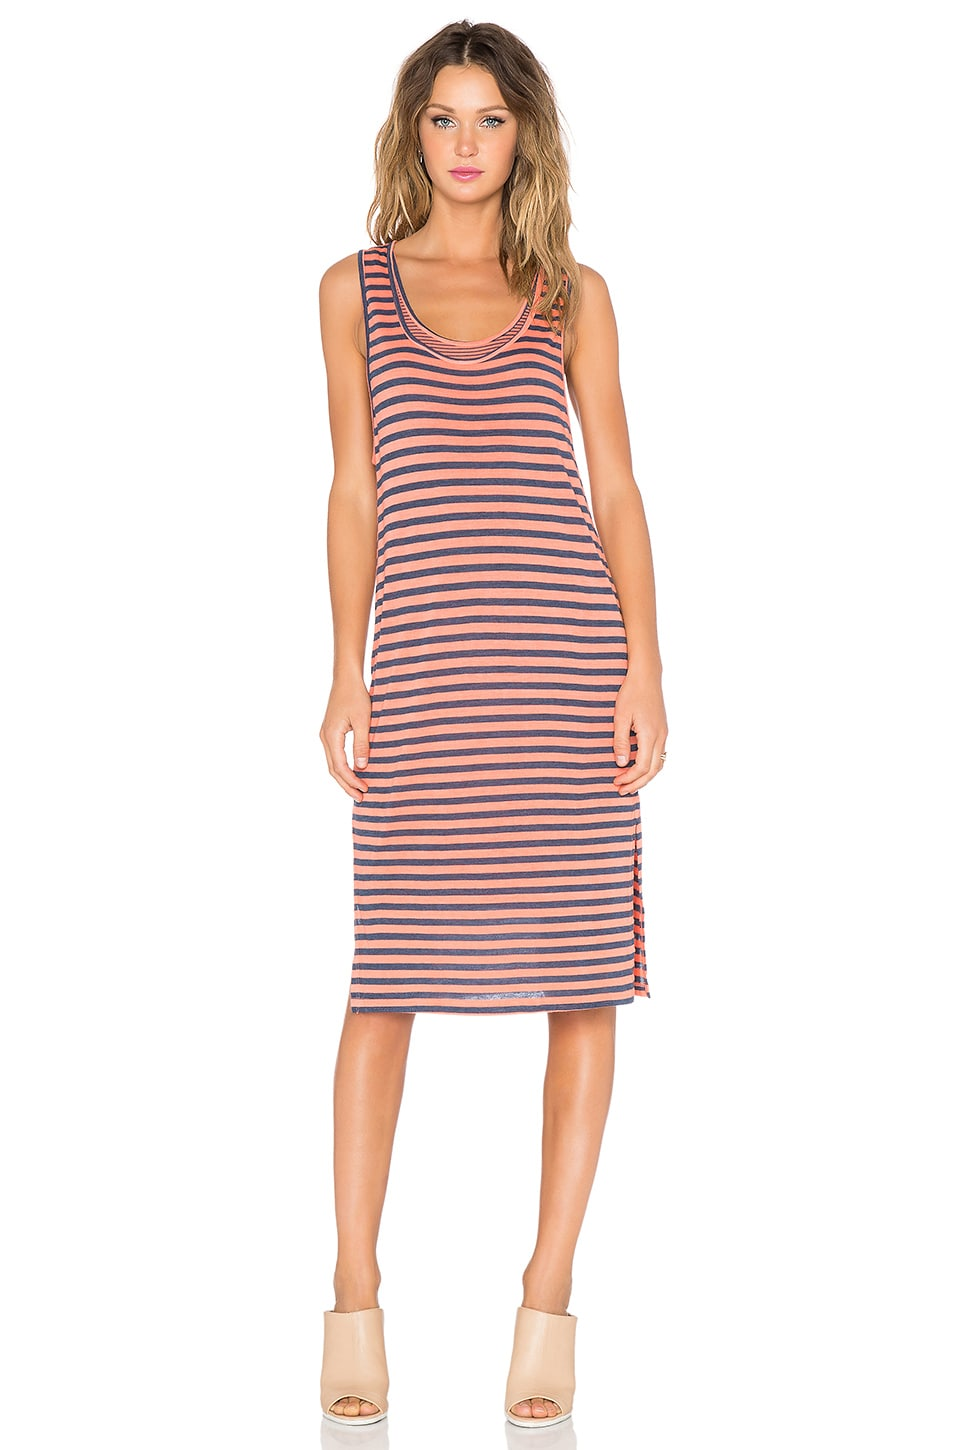 Splendid Monterosso Stripe Tank Dress in Sunrise